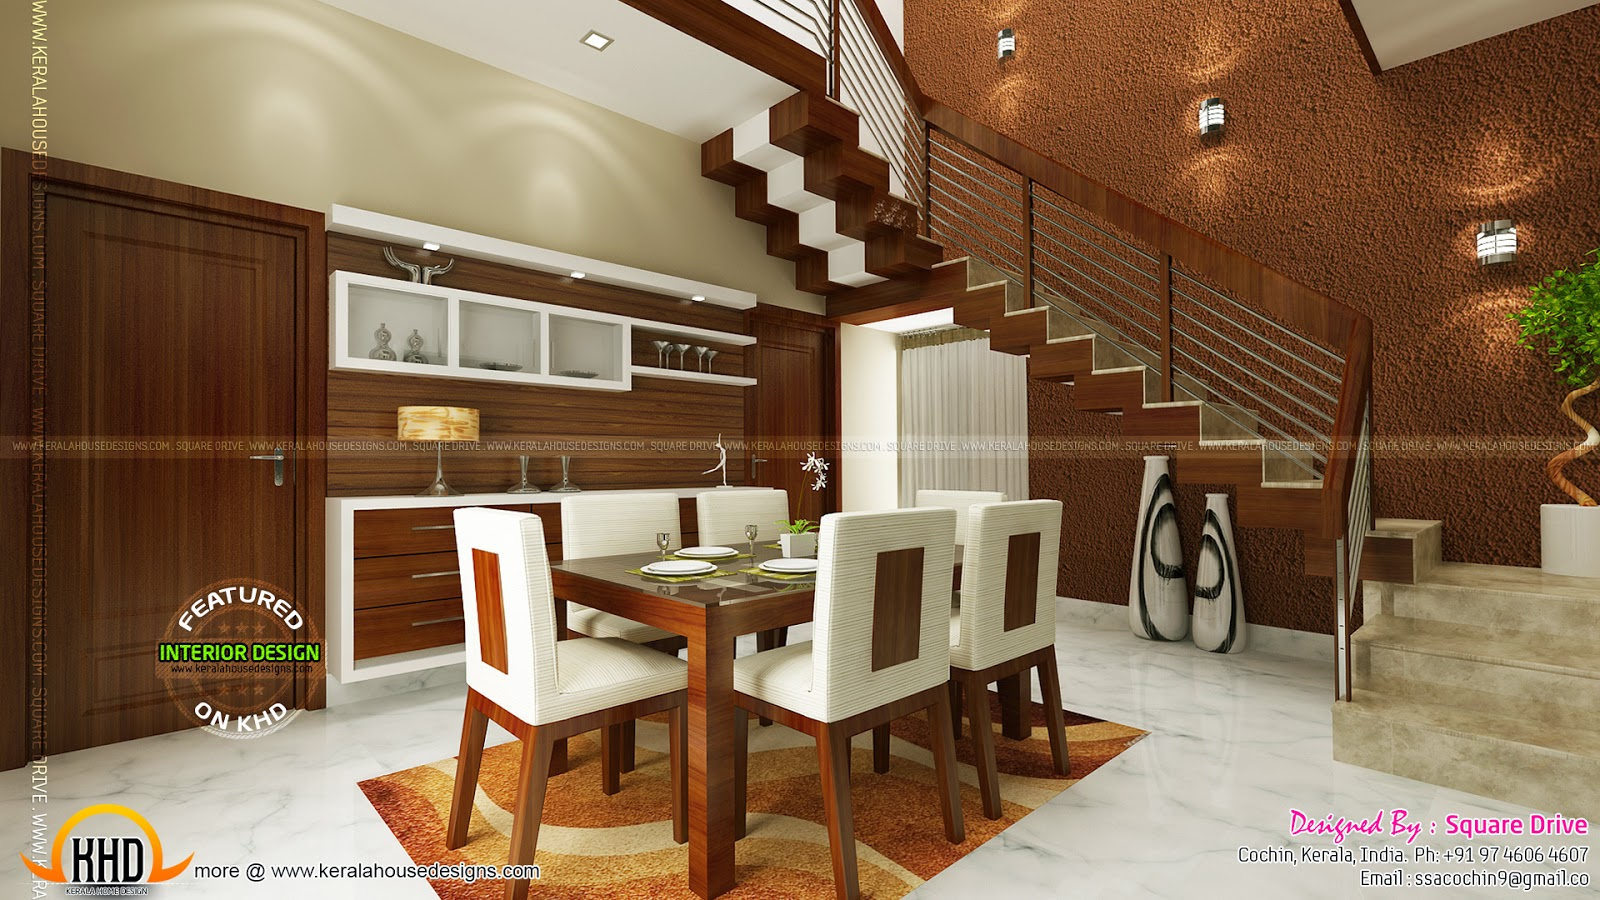 Cochin interior design kerala home design and floor plans - Dining interior design ...